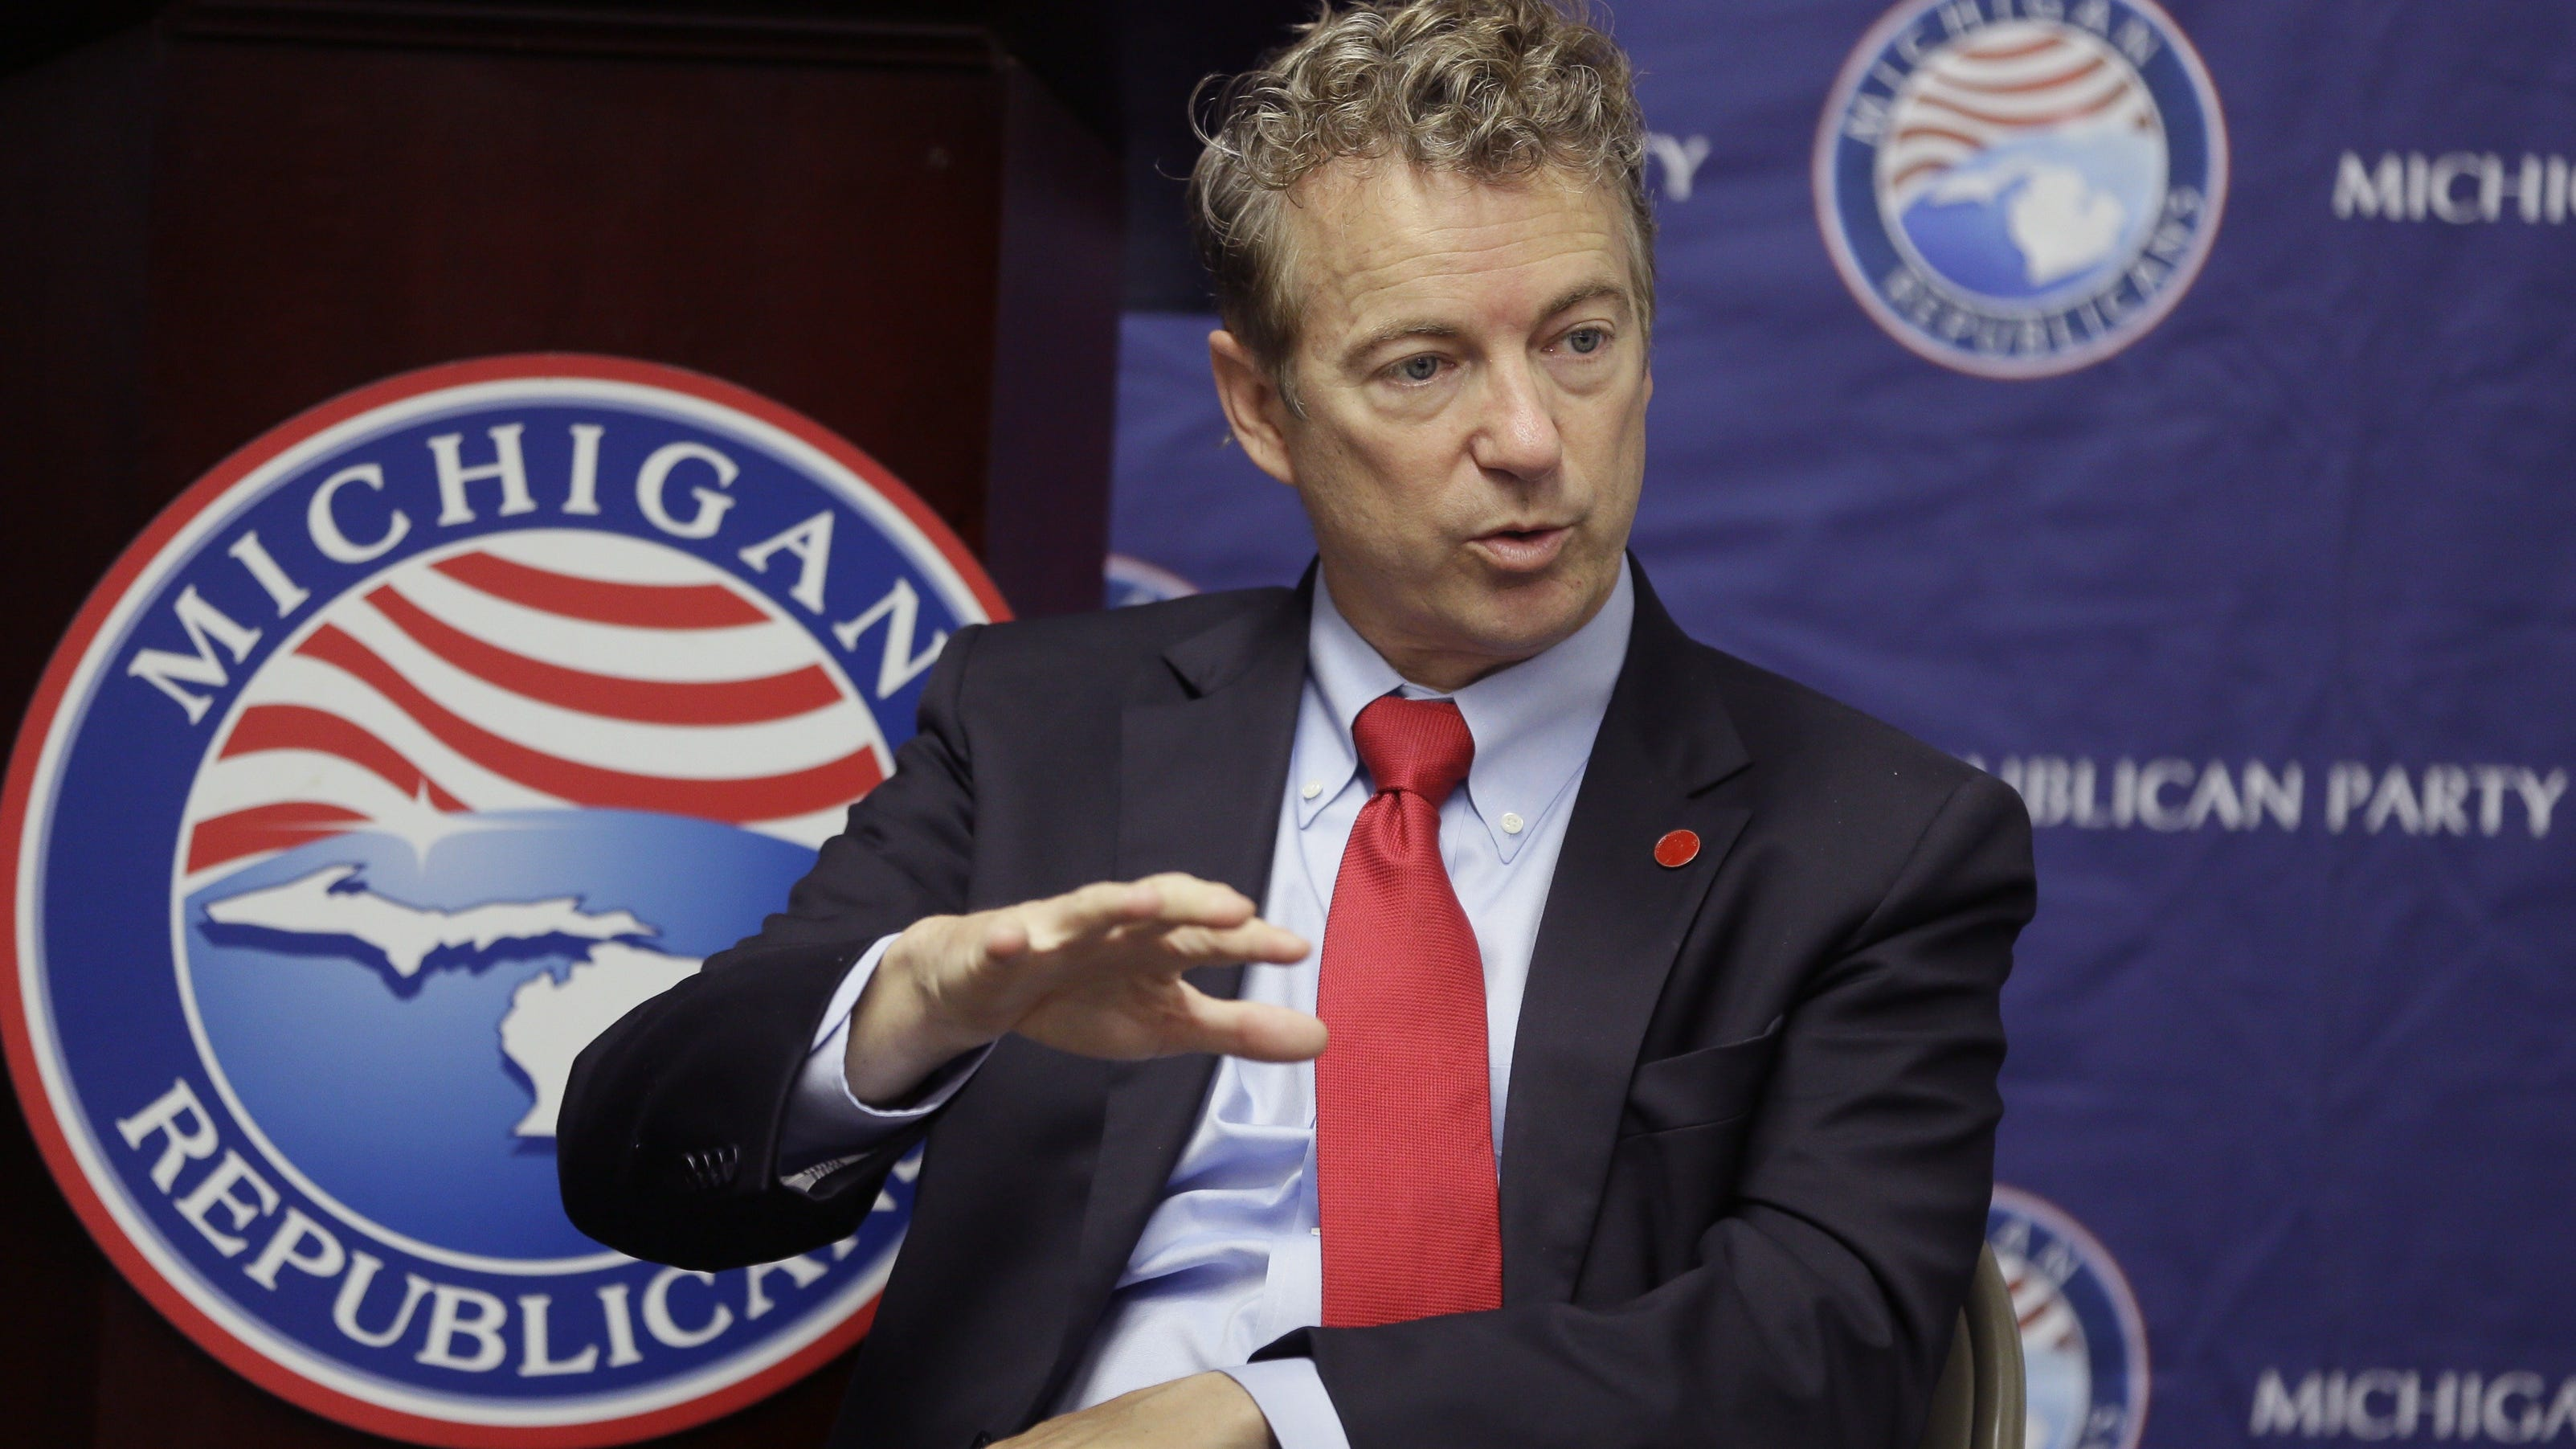 Sen. Rand Paul Rallies Michigan Republicans in Rochester